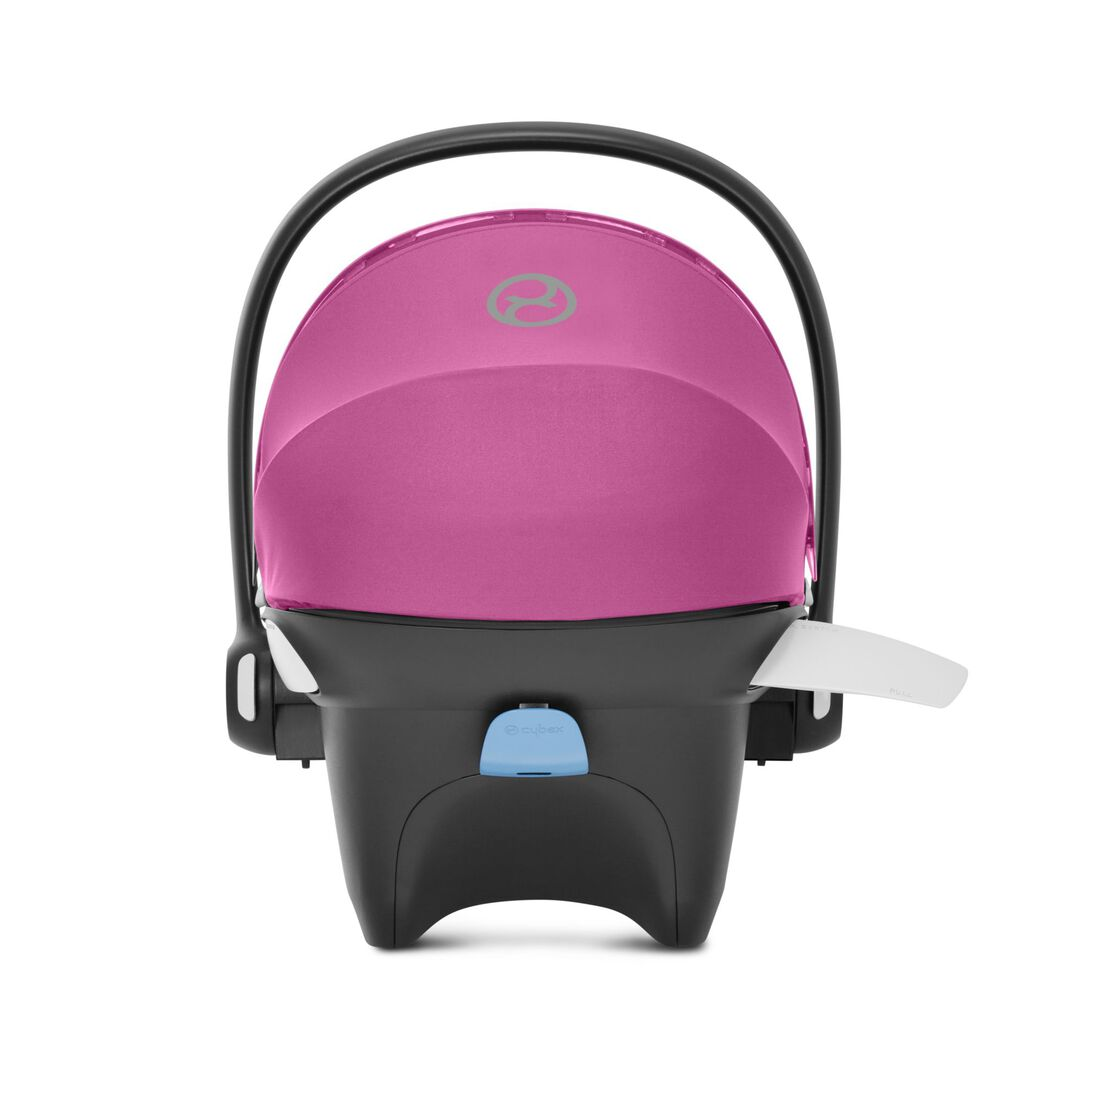 CYBEX Aton M i-Size - Magnolia Pink in Magnolia Pink large image number 6